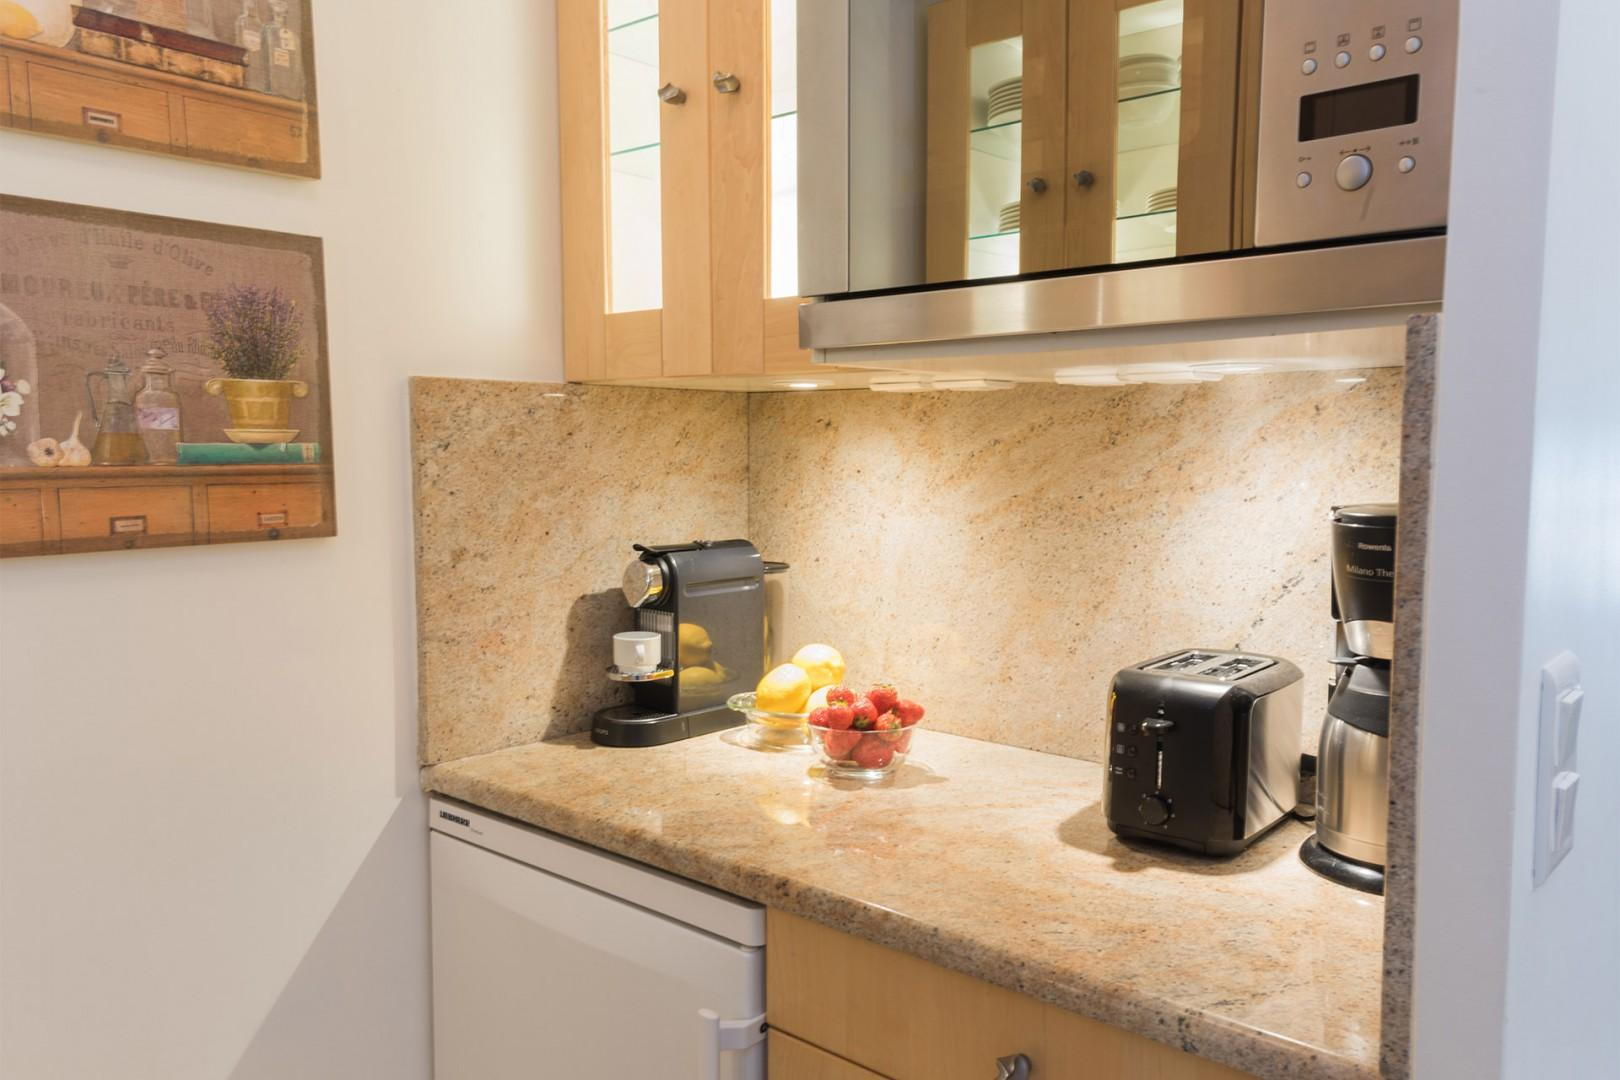 The kitchen is fully equipped, so you can prepare gourmet meals.